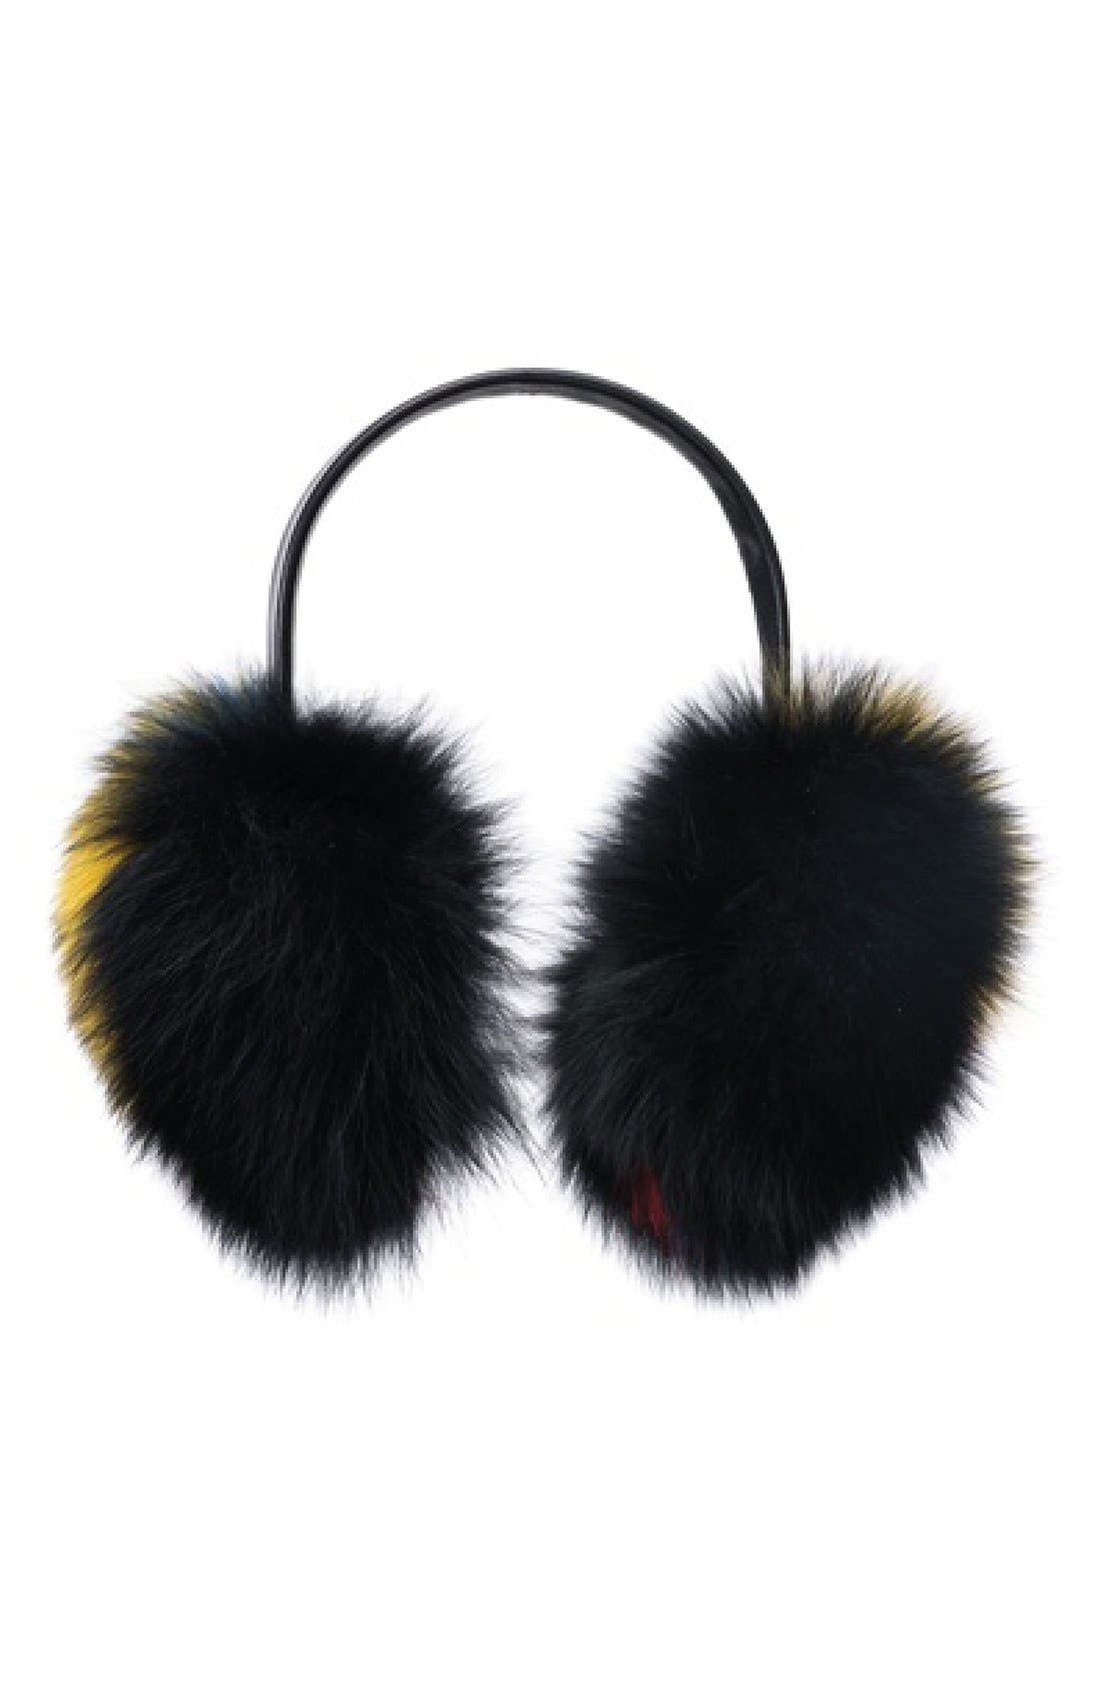 Main Image - Eugenia Kim 'Janine' Genuine Fox Fur Earmuffs